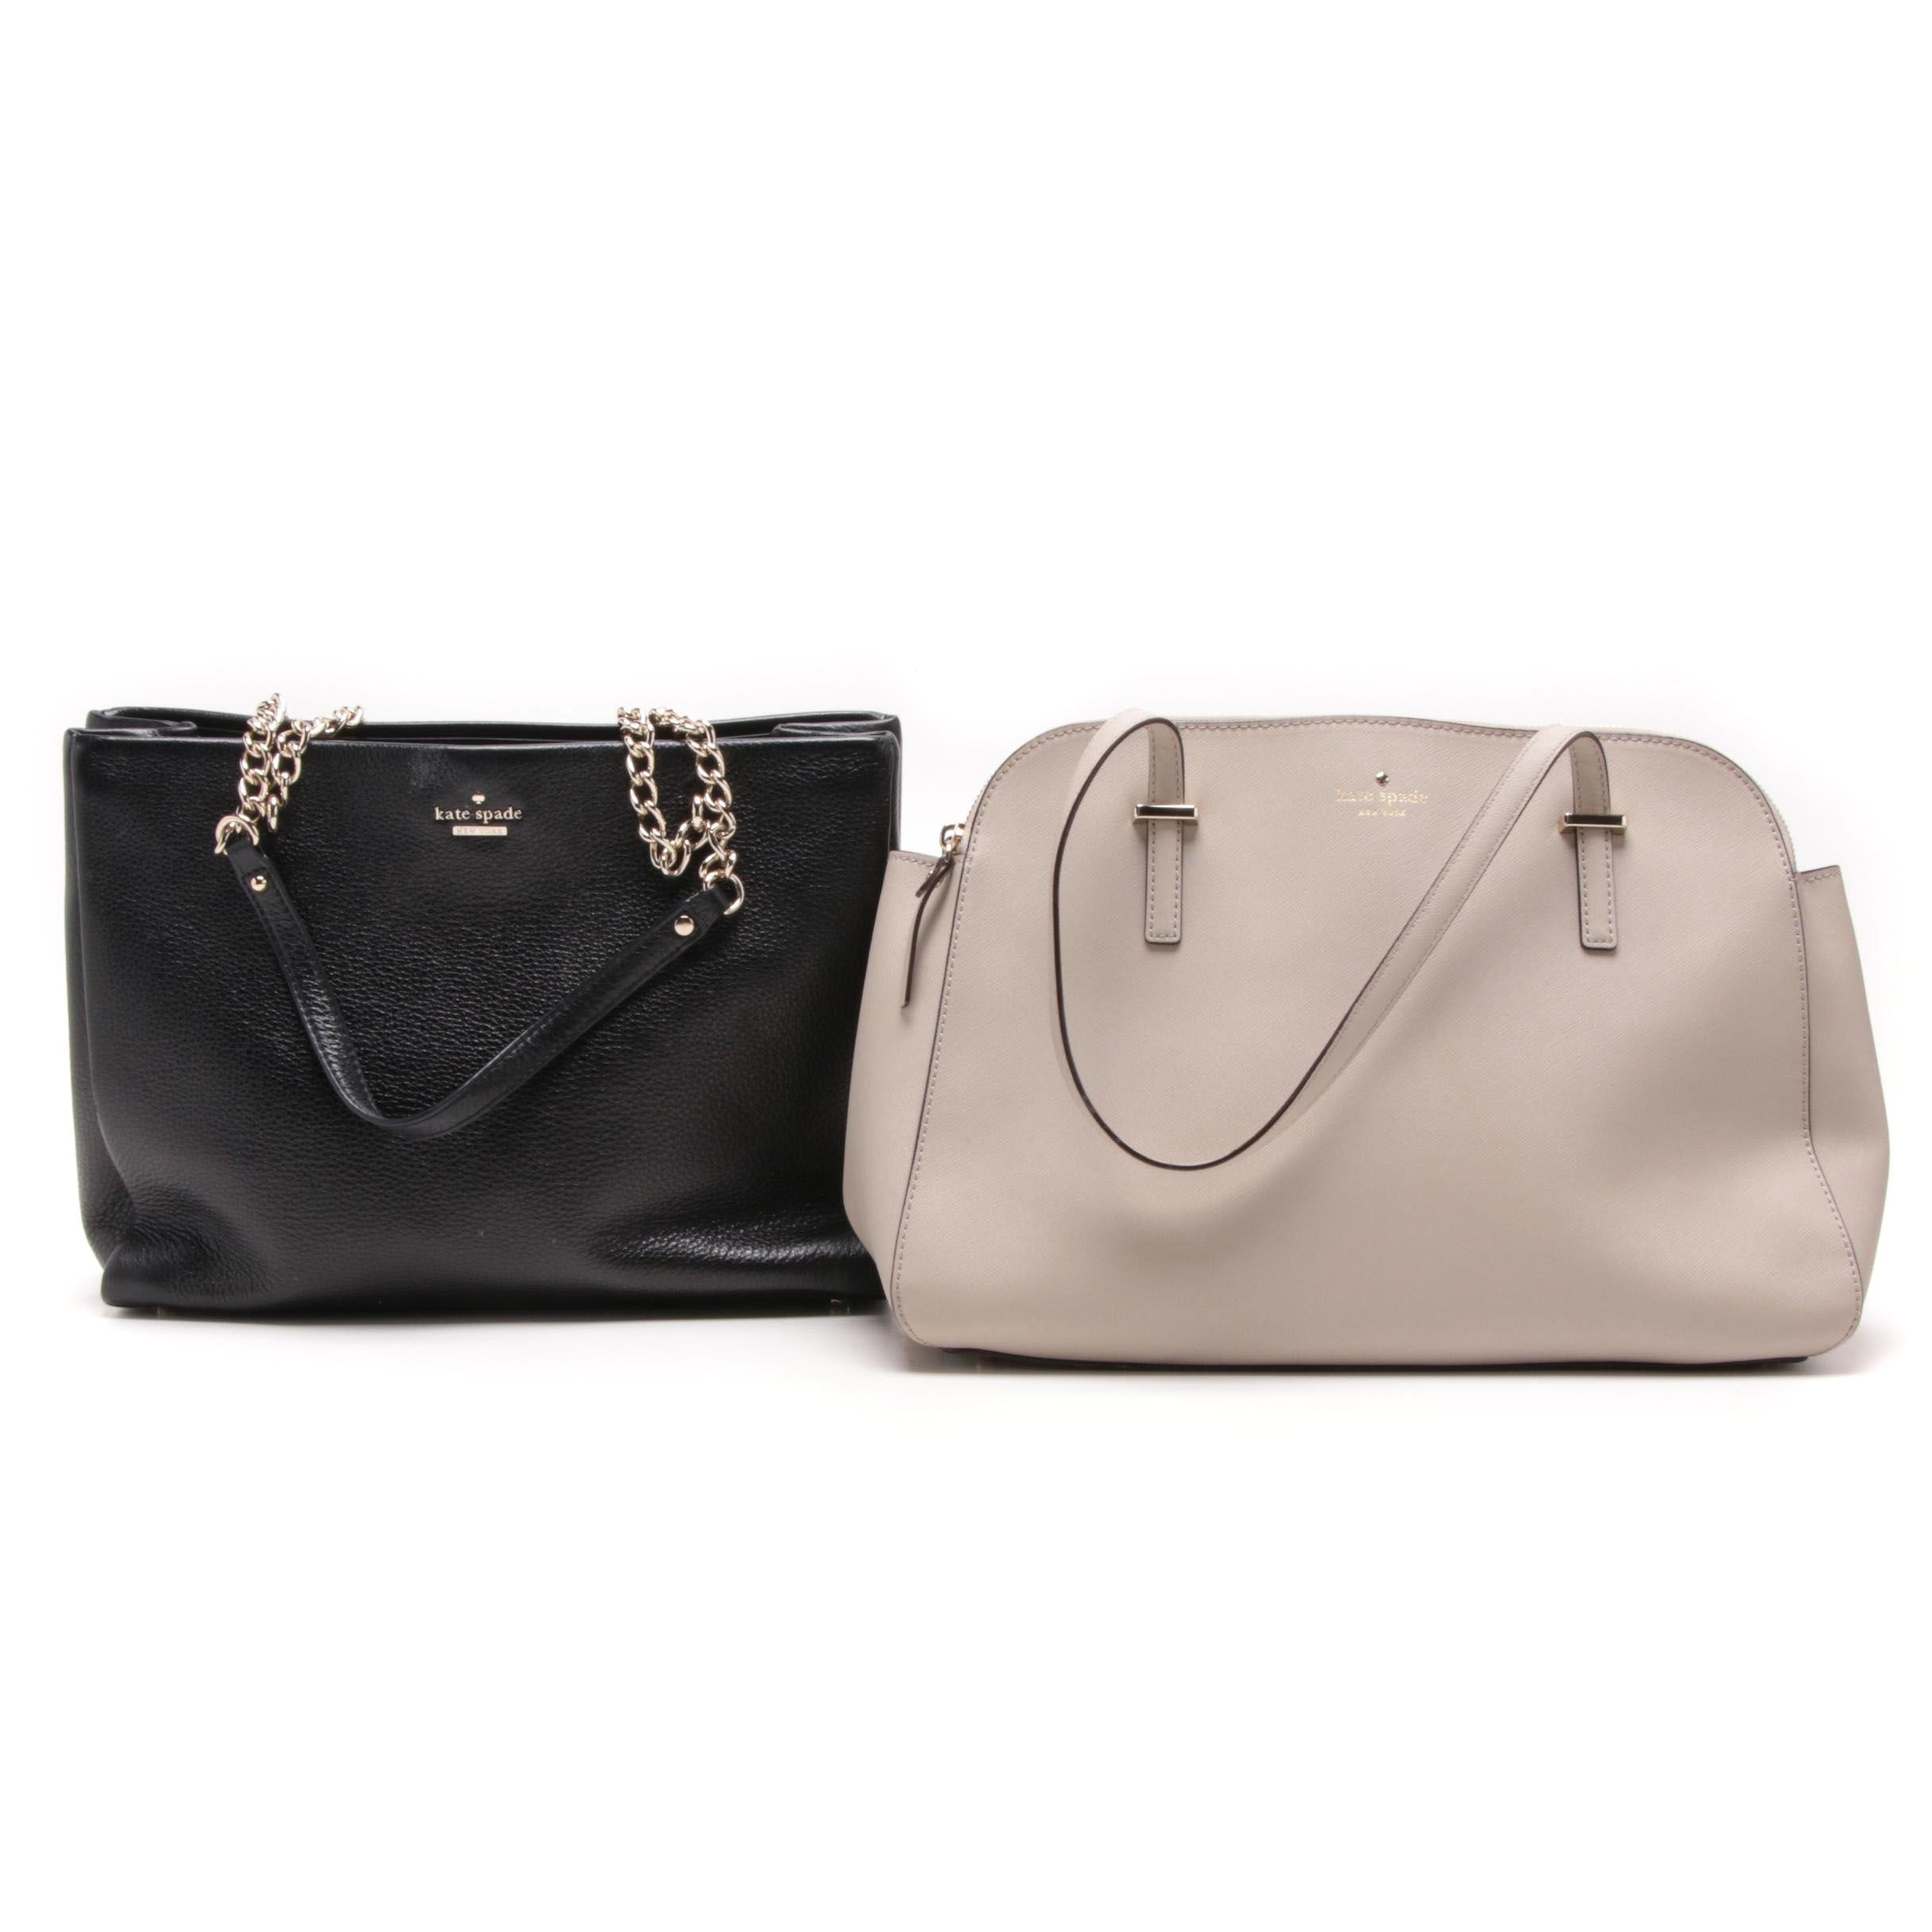 Kate Spade Gray Cedar Street Elissa Tote and Black Emerson Place Dewy Tote